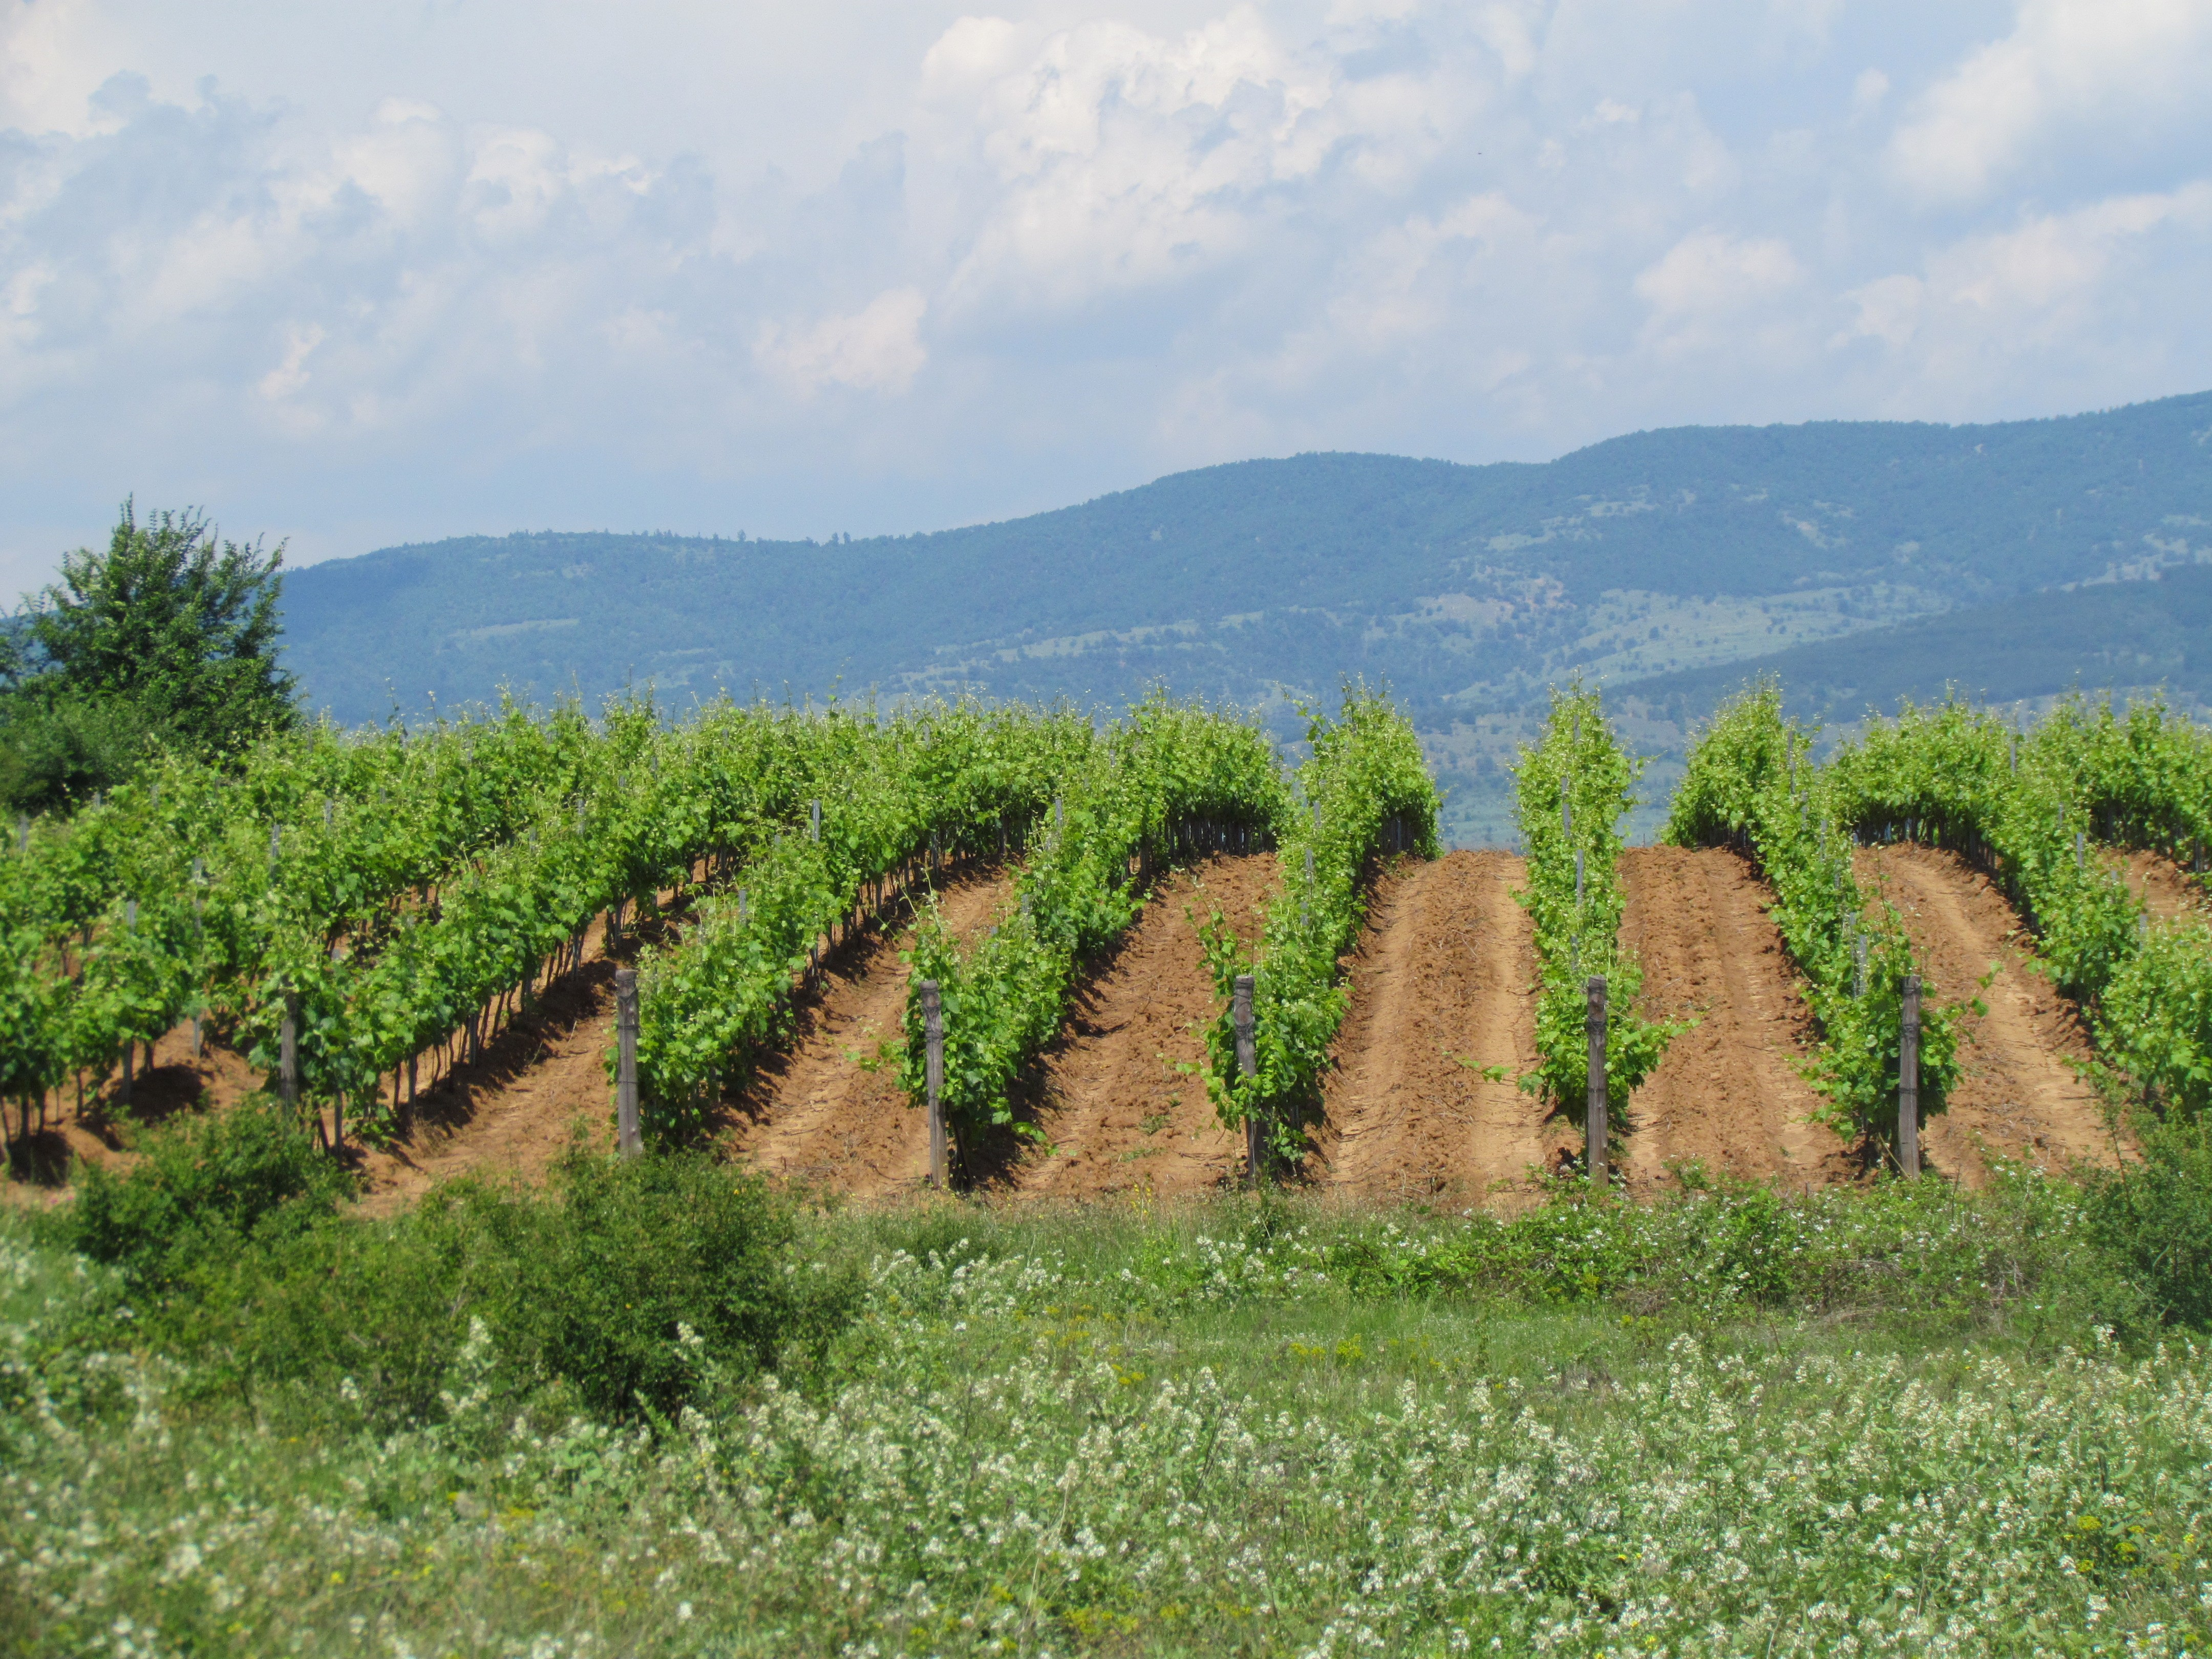 Image of Vineyard for sale in Southern Bulgaria